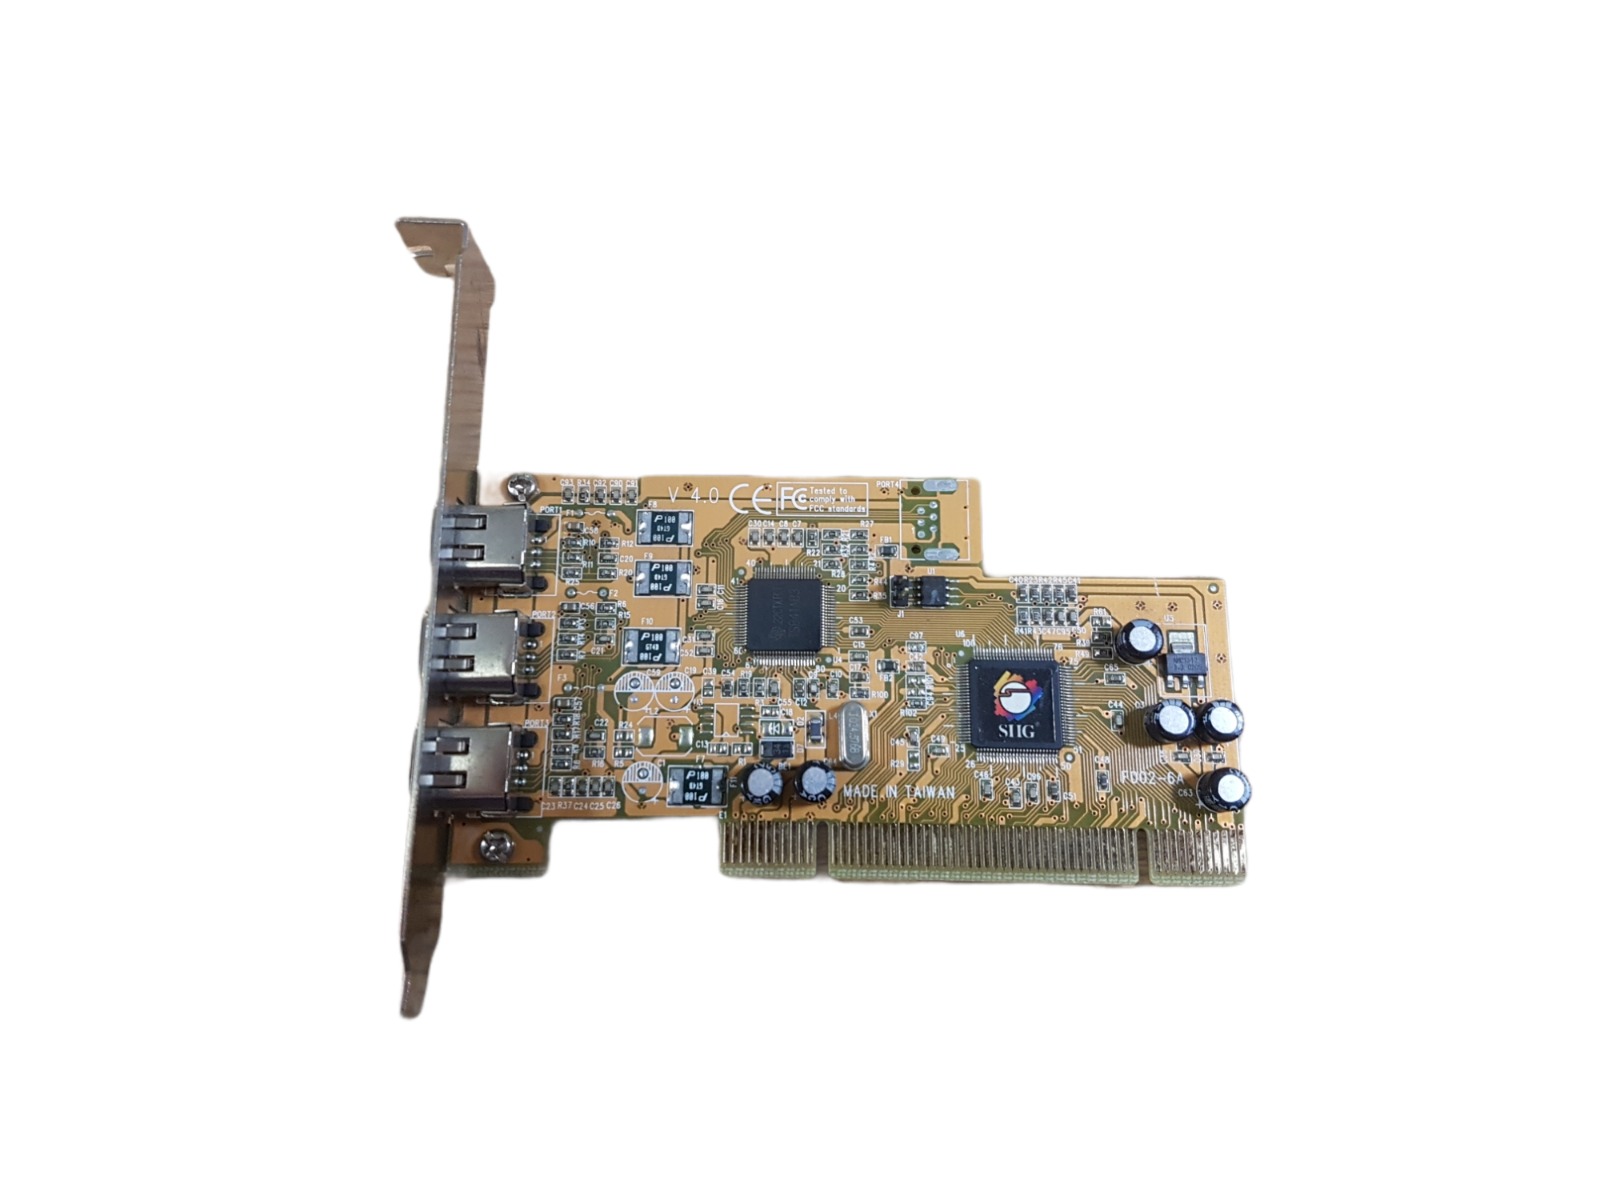 SIIG F002-6A 3-Port PCI FireWire Adapter Card Tested Working